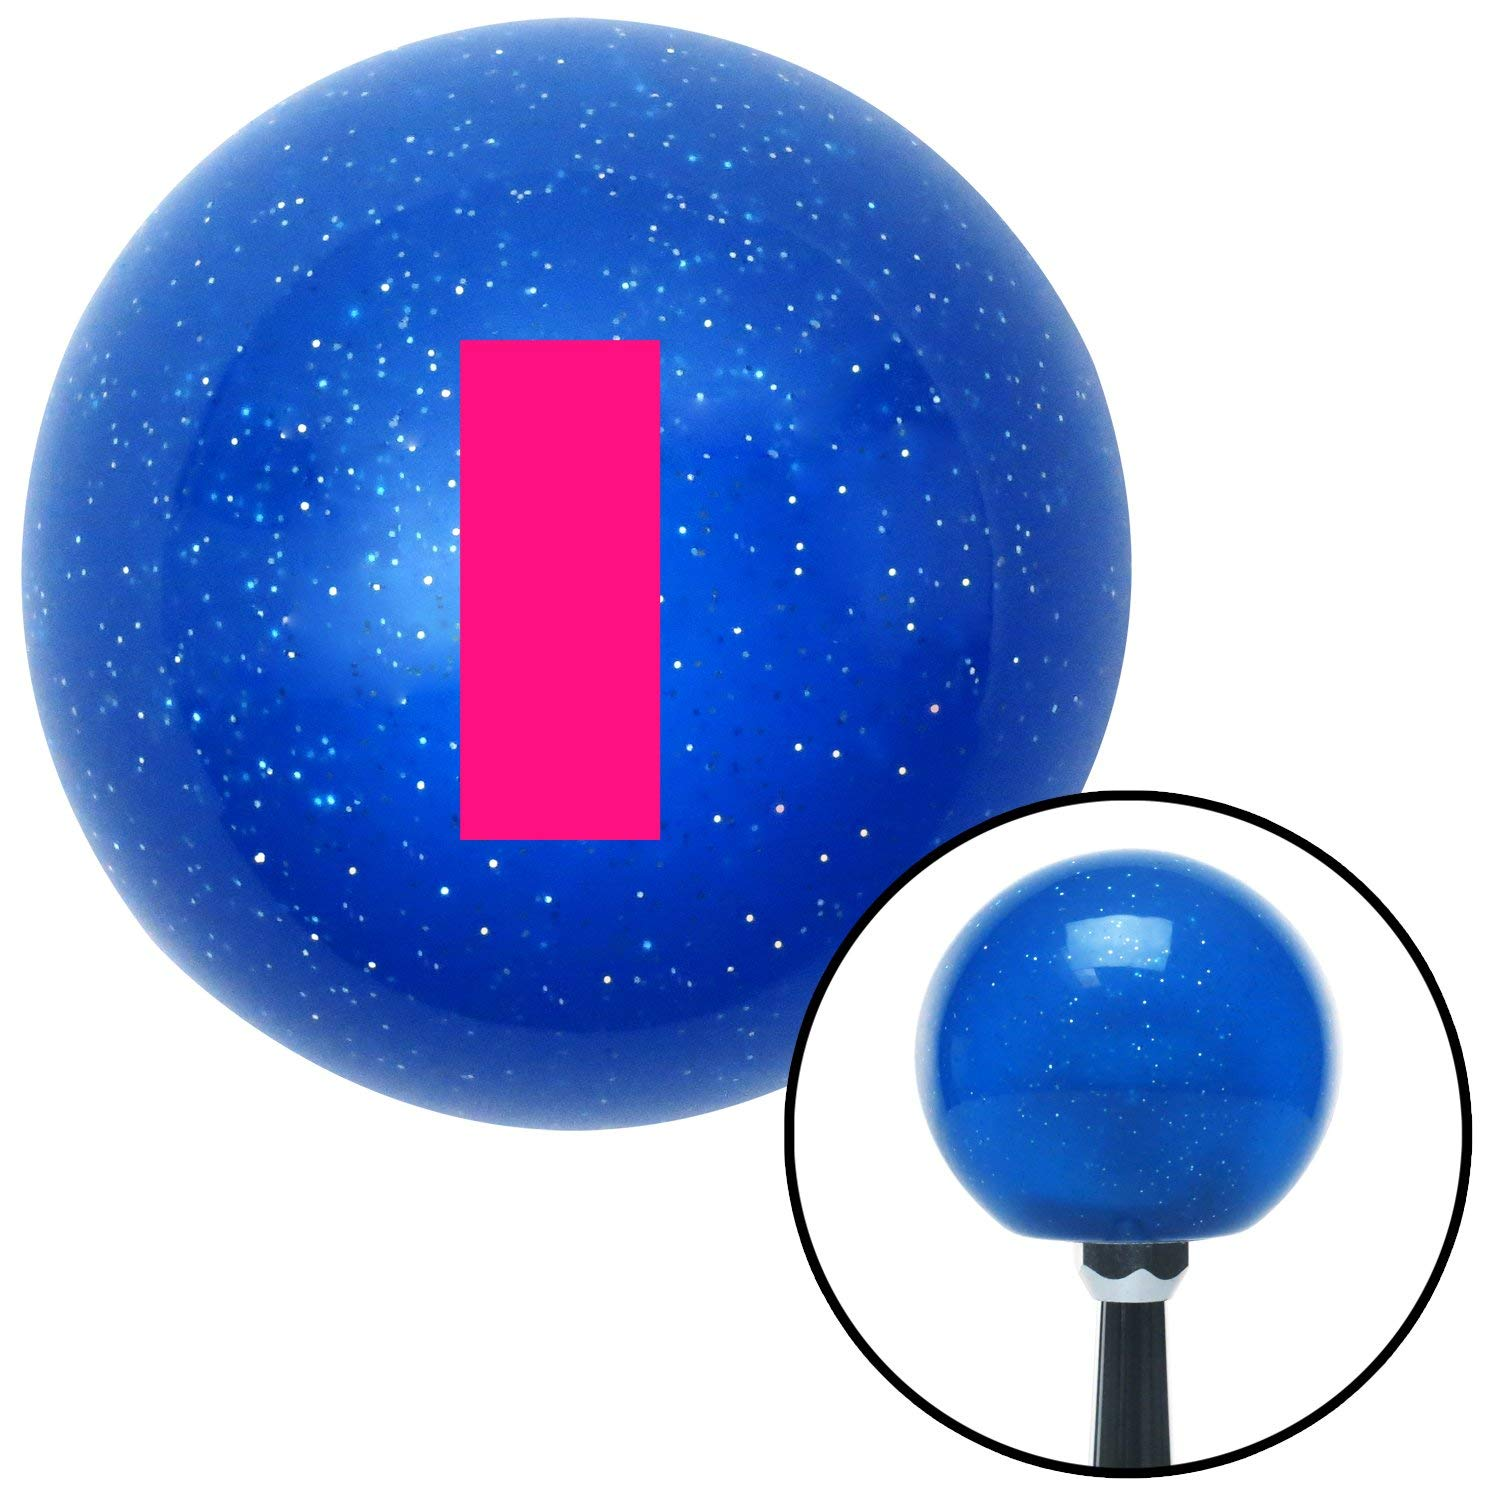 American Shifter 26413 Blue Metal Flake Shift Knob Pink Officer 01-2n Lt. and 1d Lt.